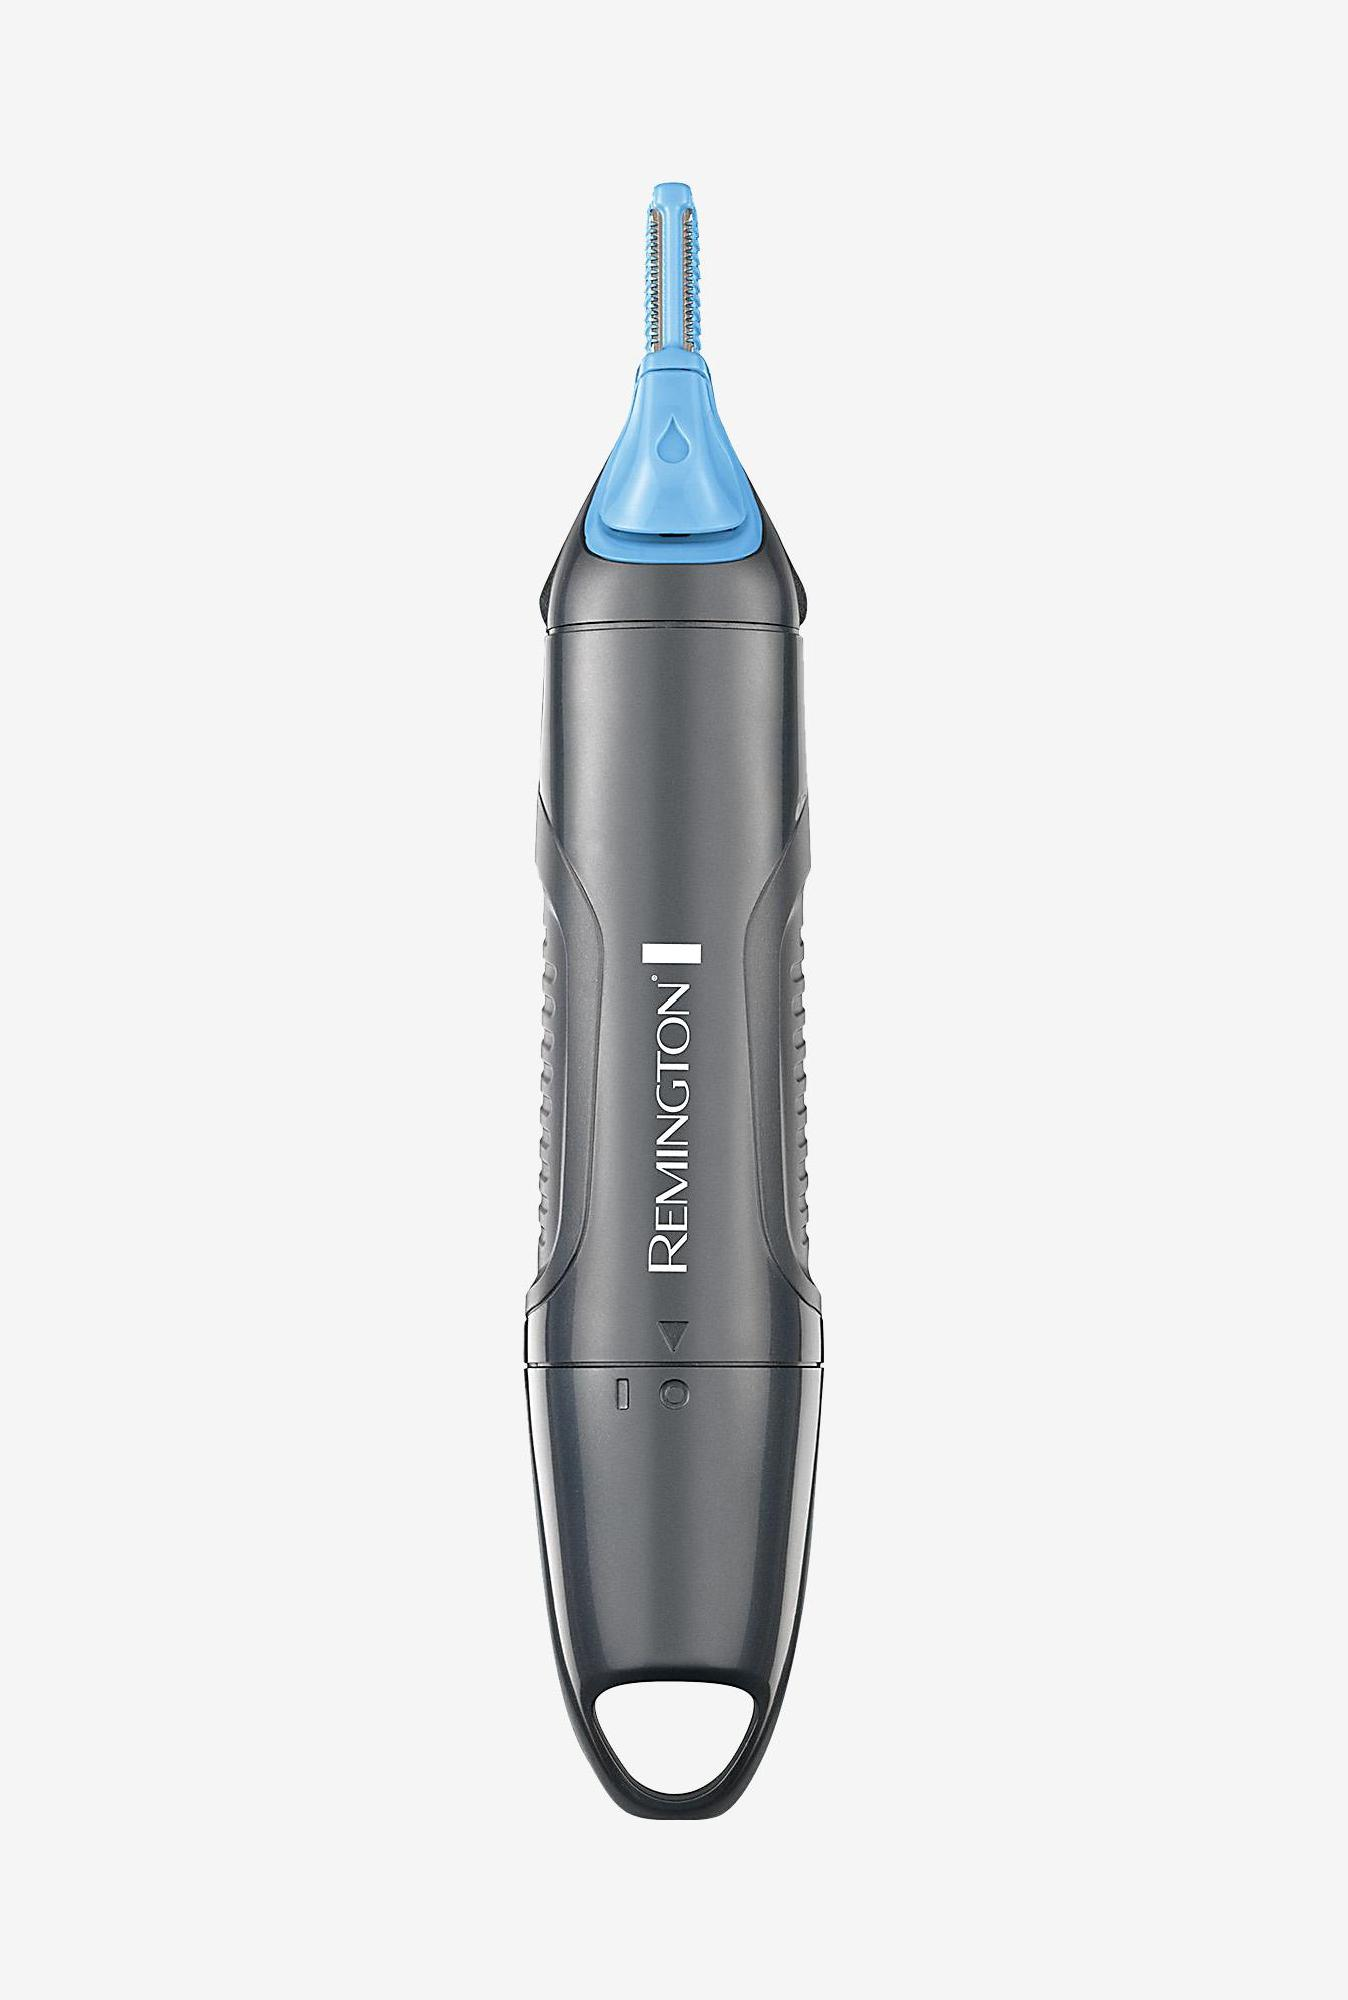 Remington NE 3450 Nano Series Nose & Ear Trimmer Grey